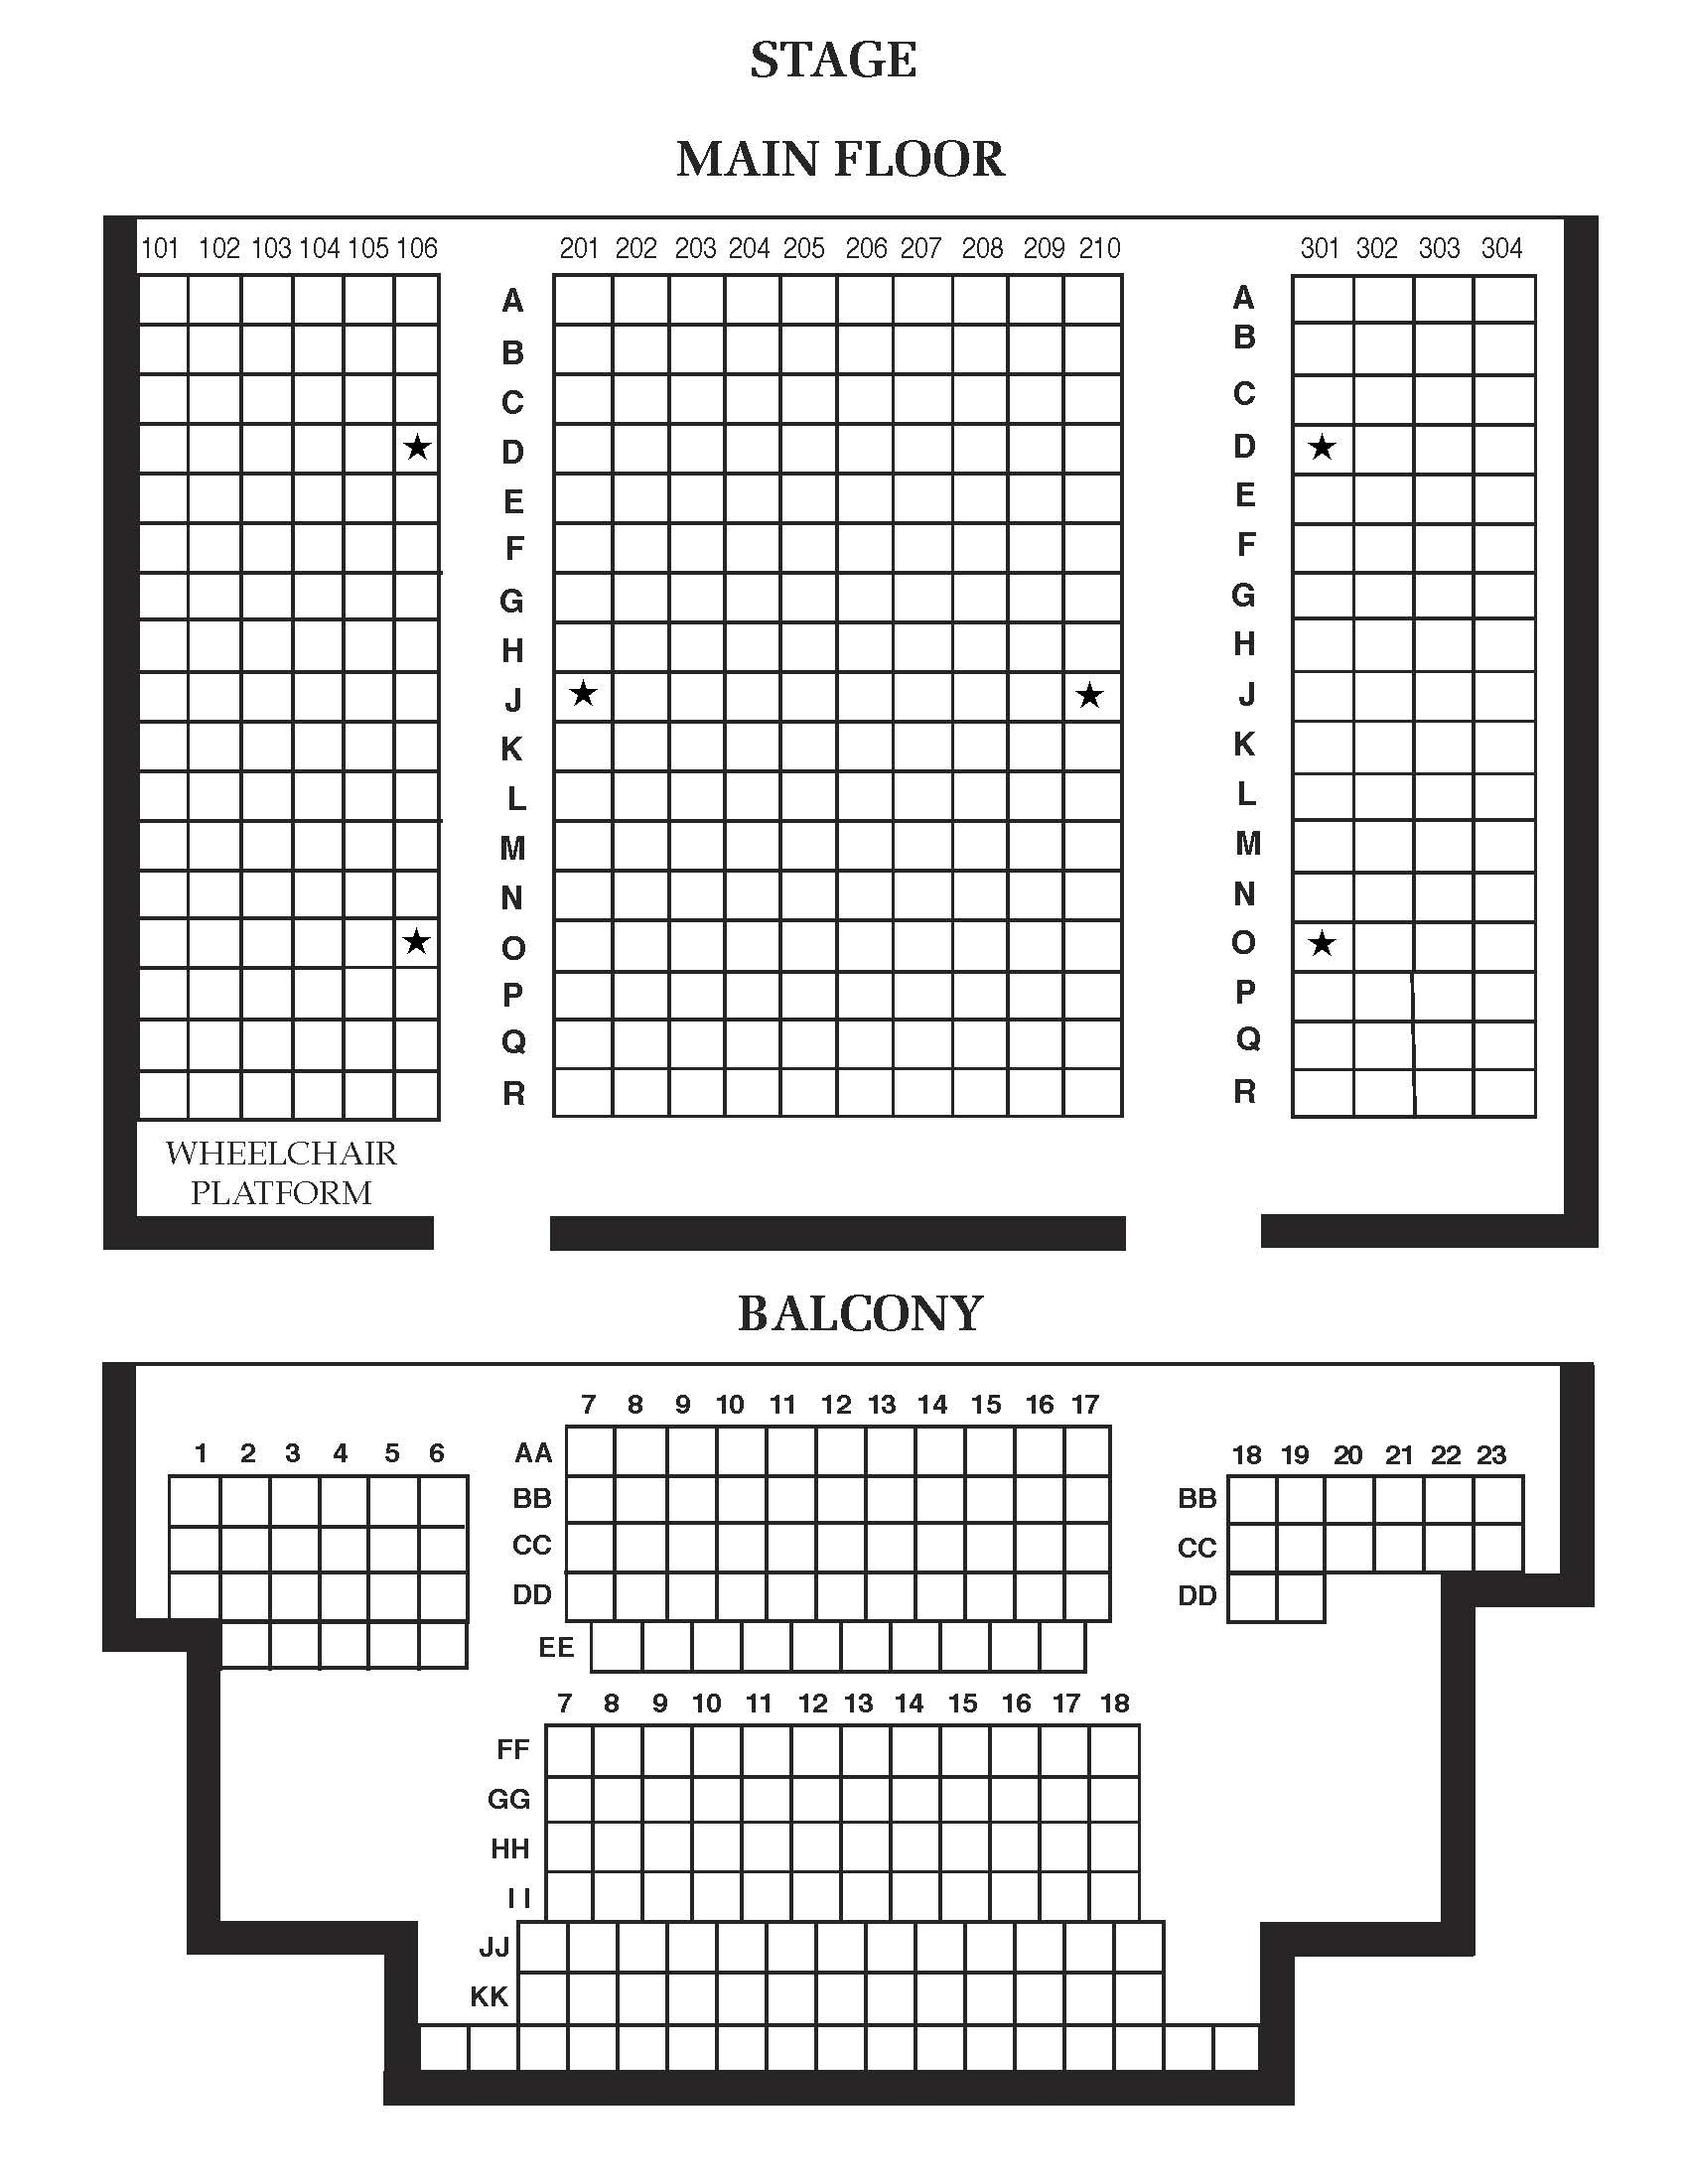 Beall Hall Seating Chart